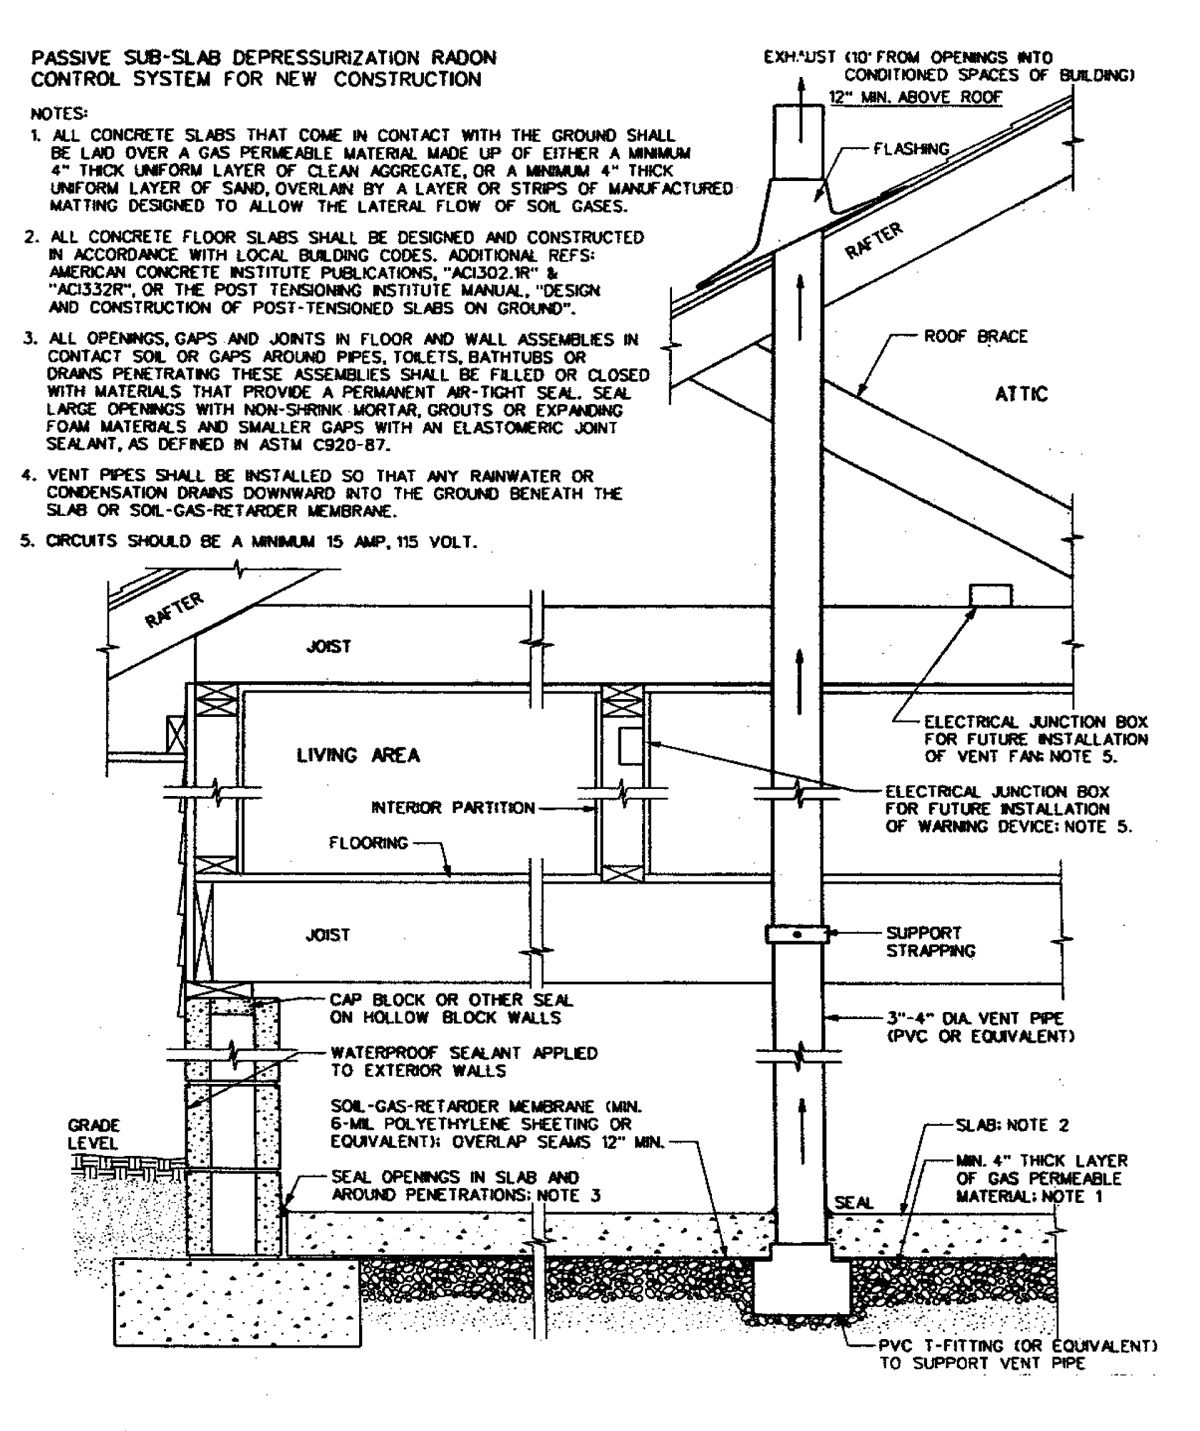 hight resolution of a typical radon mitigation system image from building radon out epa 2001